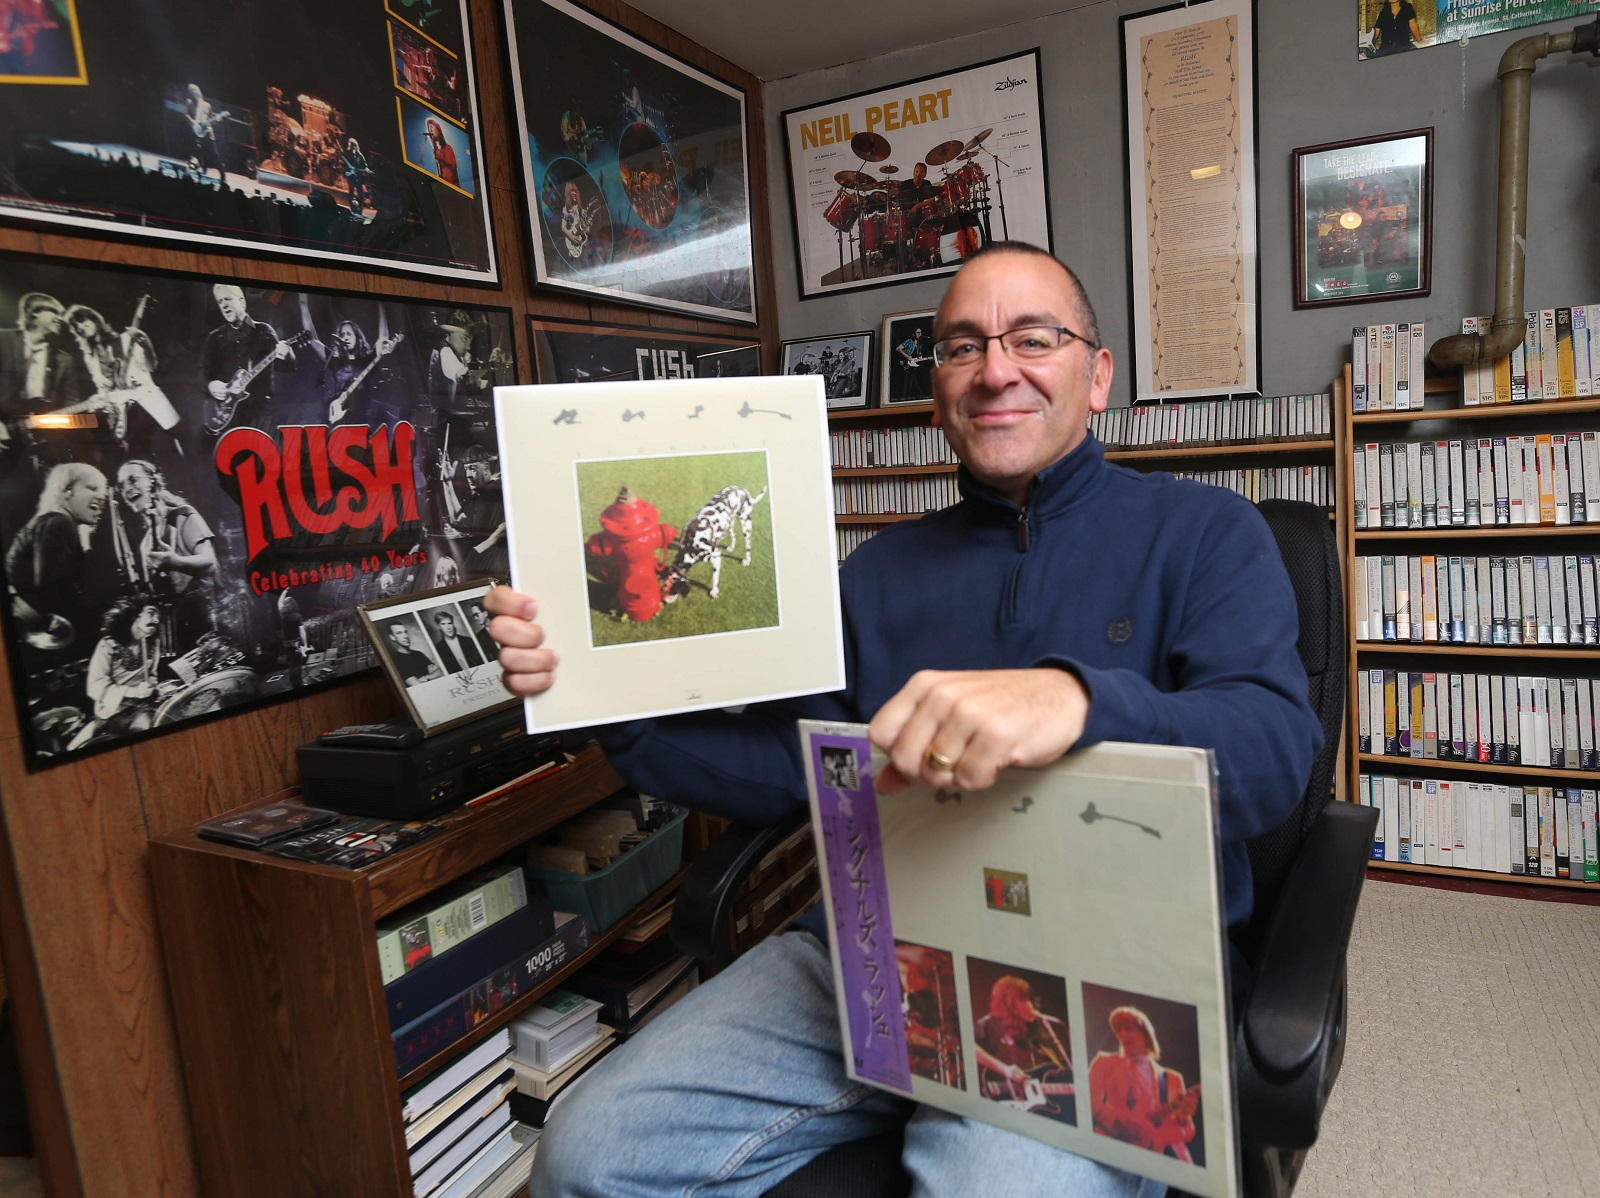 Ray Wawrzyniak of the Town of Tonawanda has been an avid Rush fan for 35 years. He appears in a new documentary about the band which was released about a month ago. (Sharon Cantillon/Buffalo News)